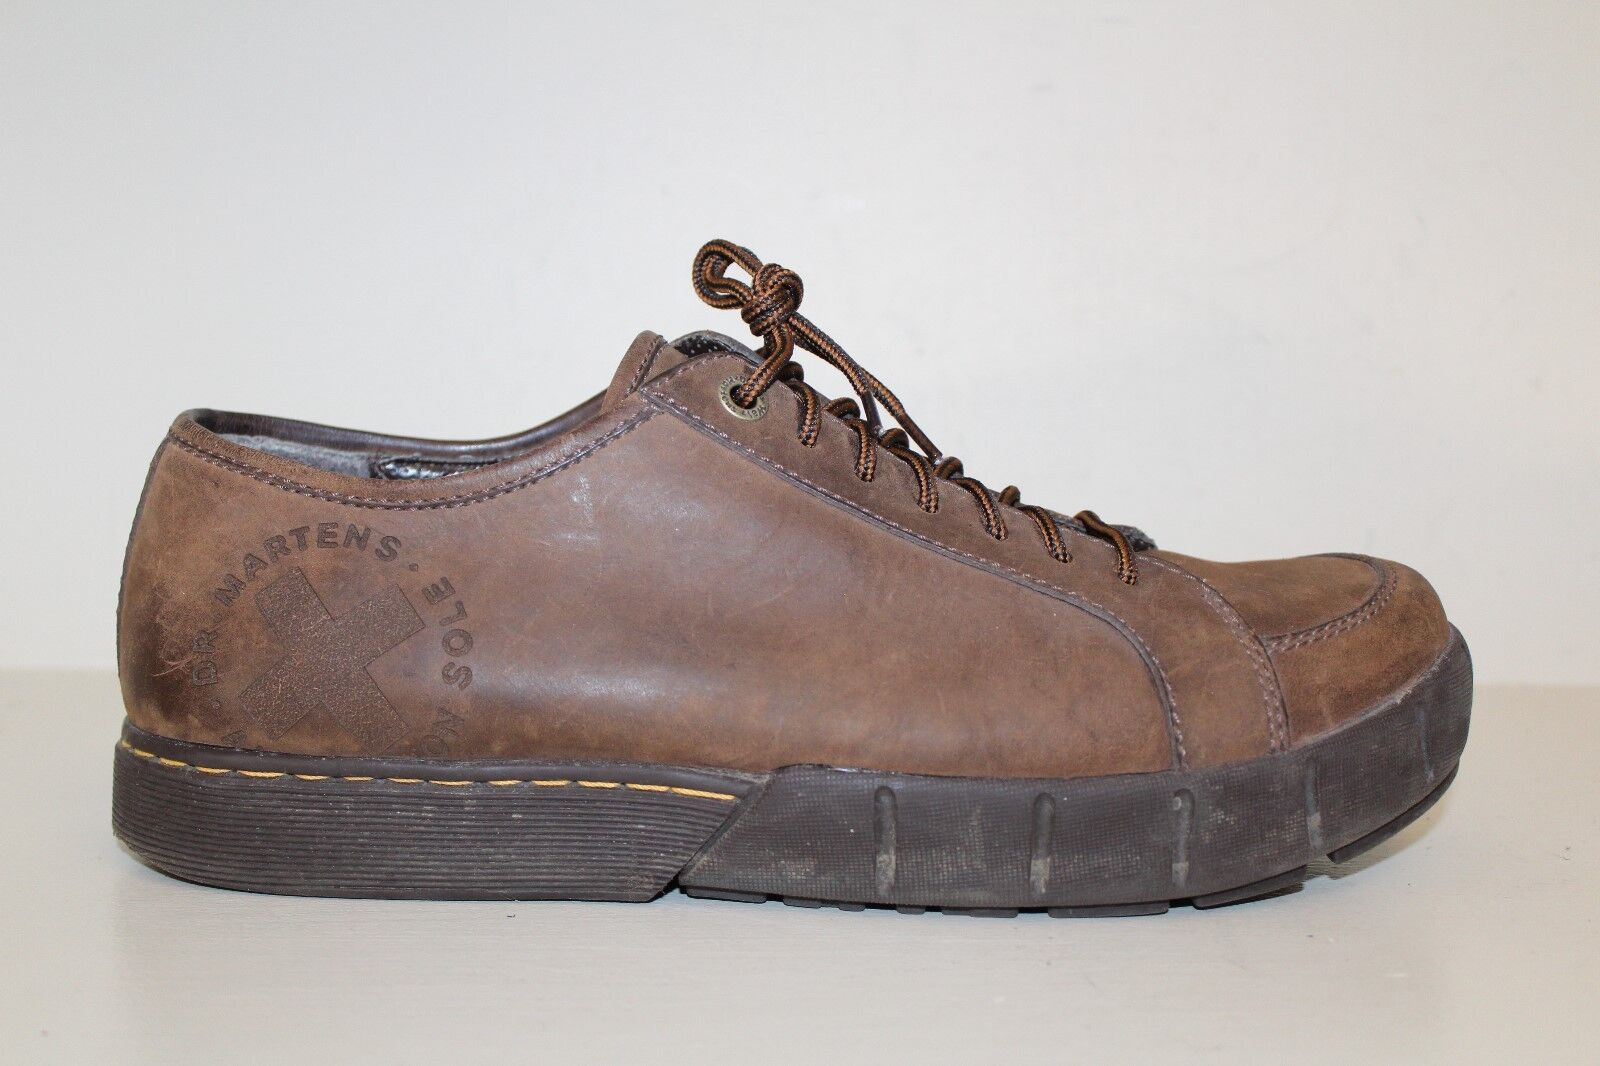 Dr. Martens Mens Oxford Sneaker shoes Sz 12 Brown Leather Lace Up Air Cushion